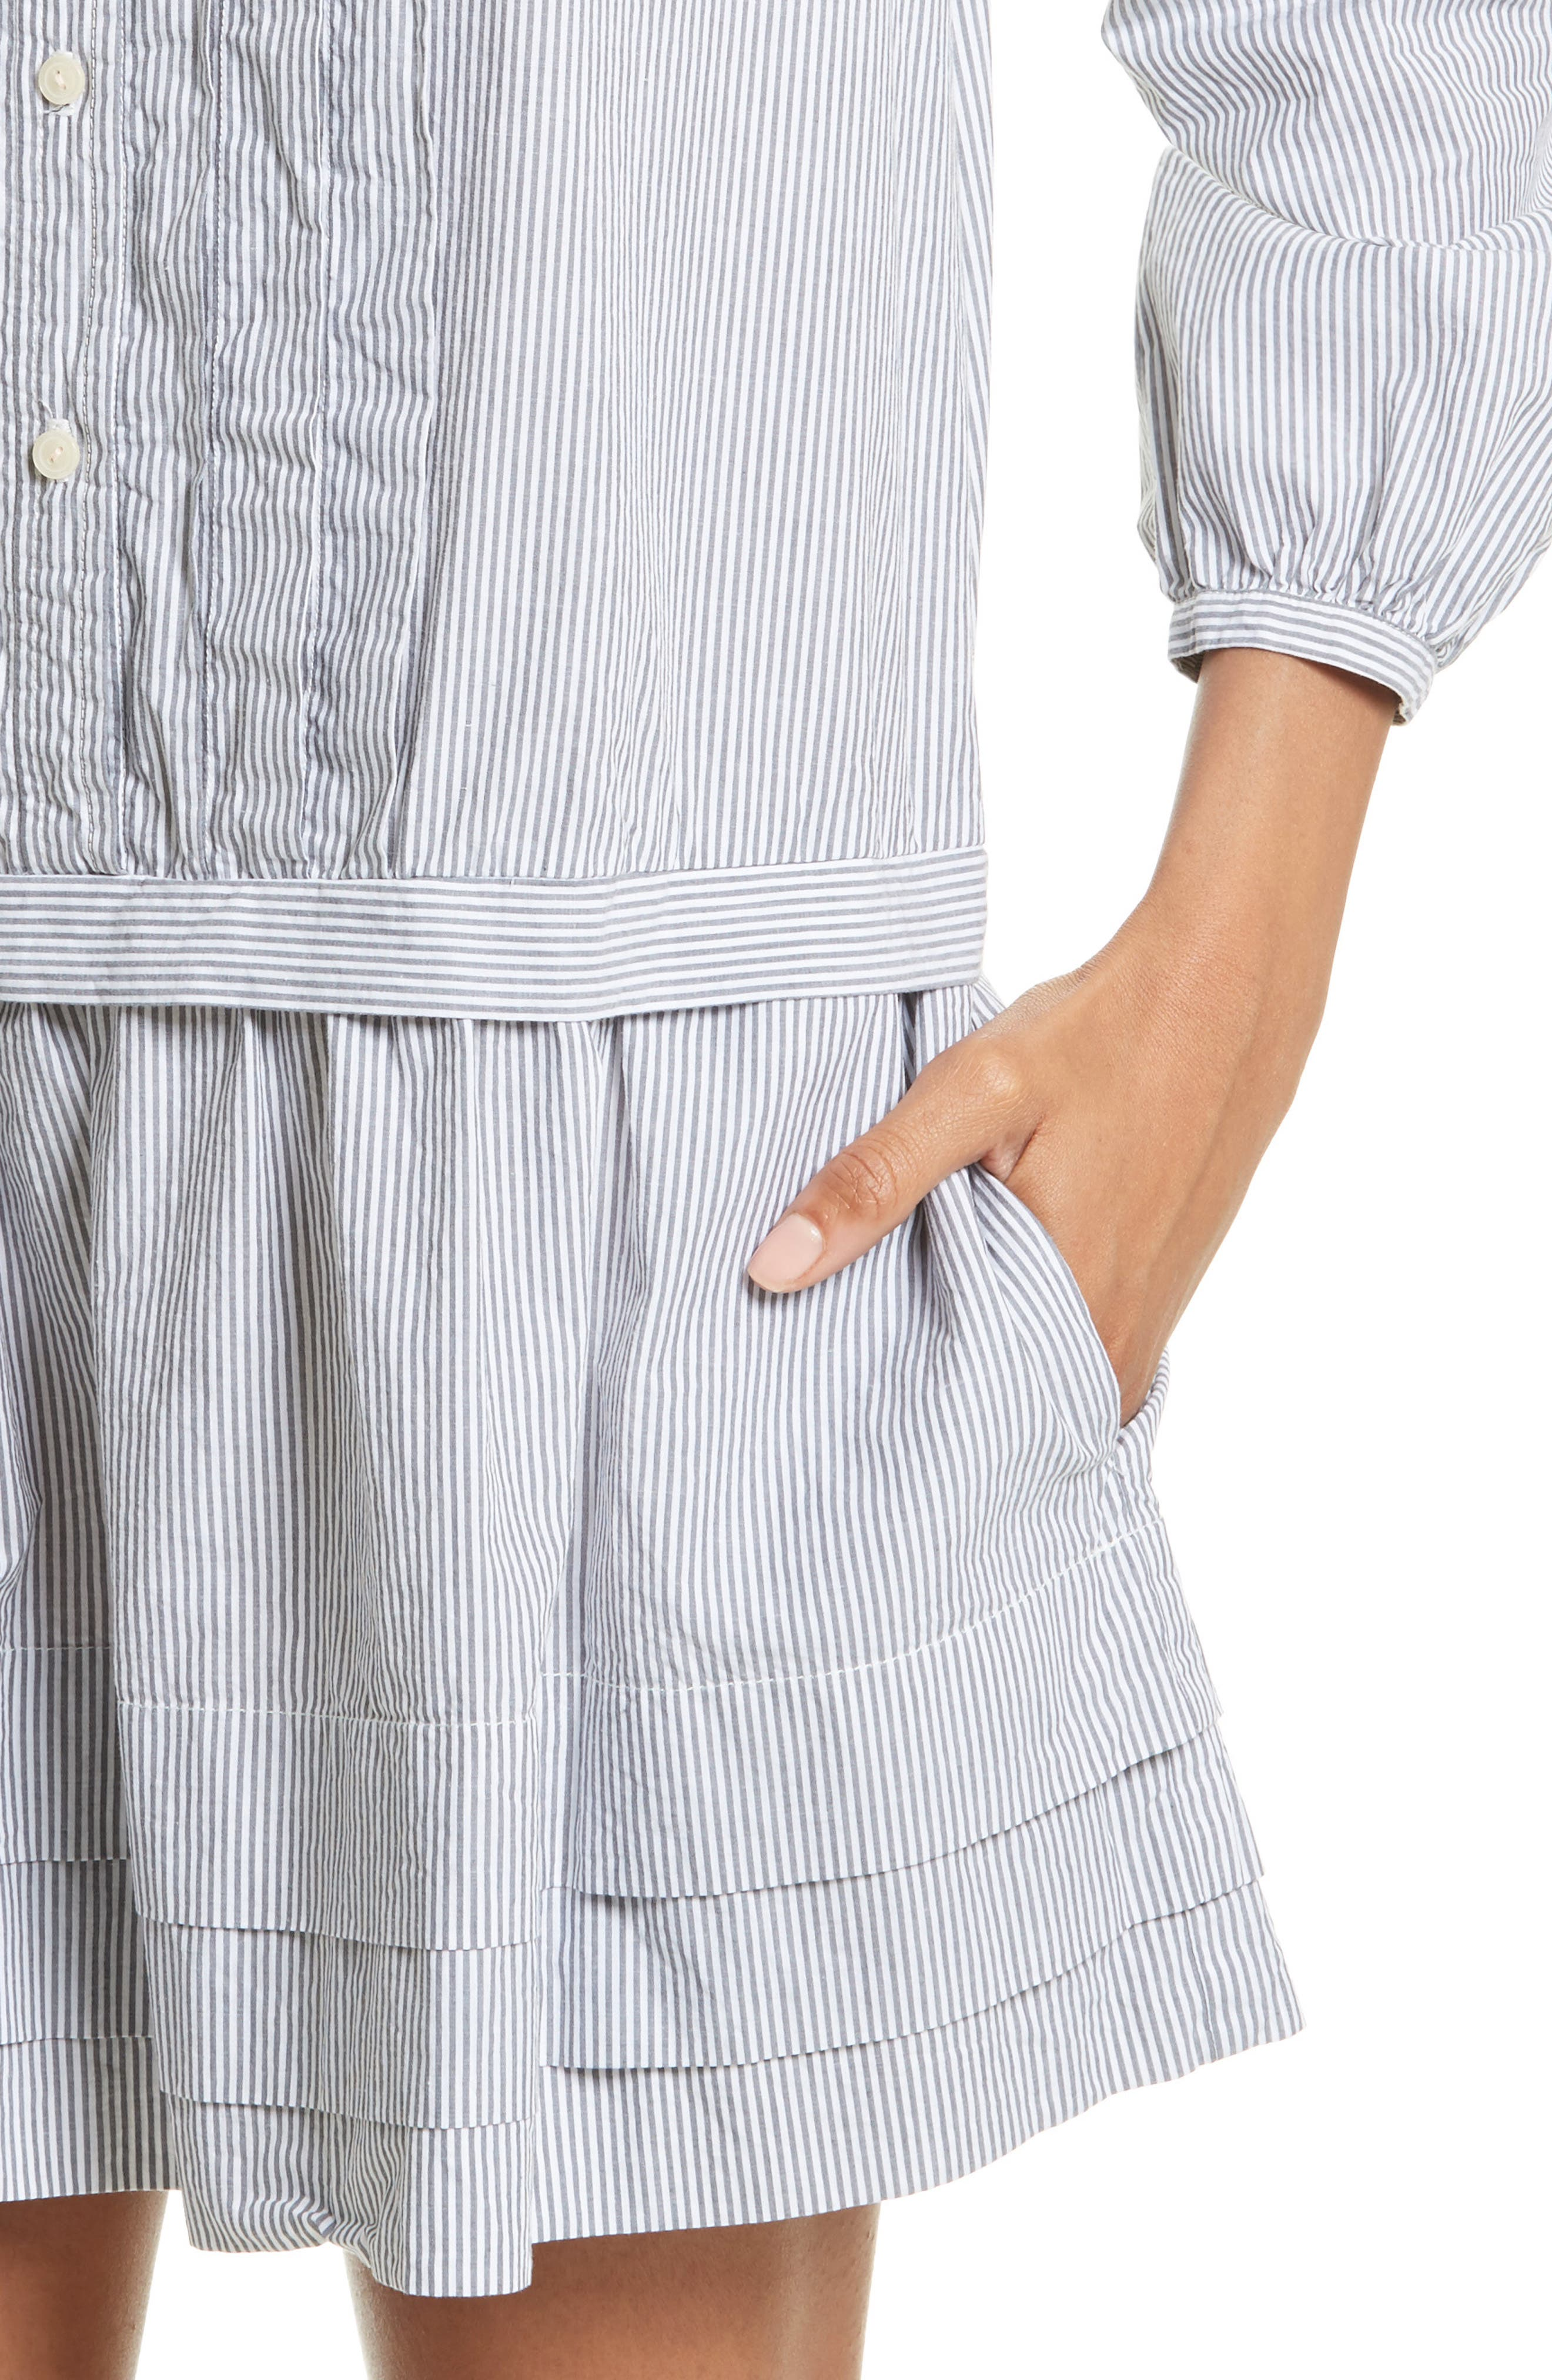 Cotton Shirtdress,                             Alternate thumbnail 4, color,                             001